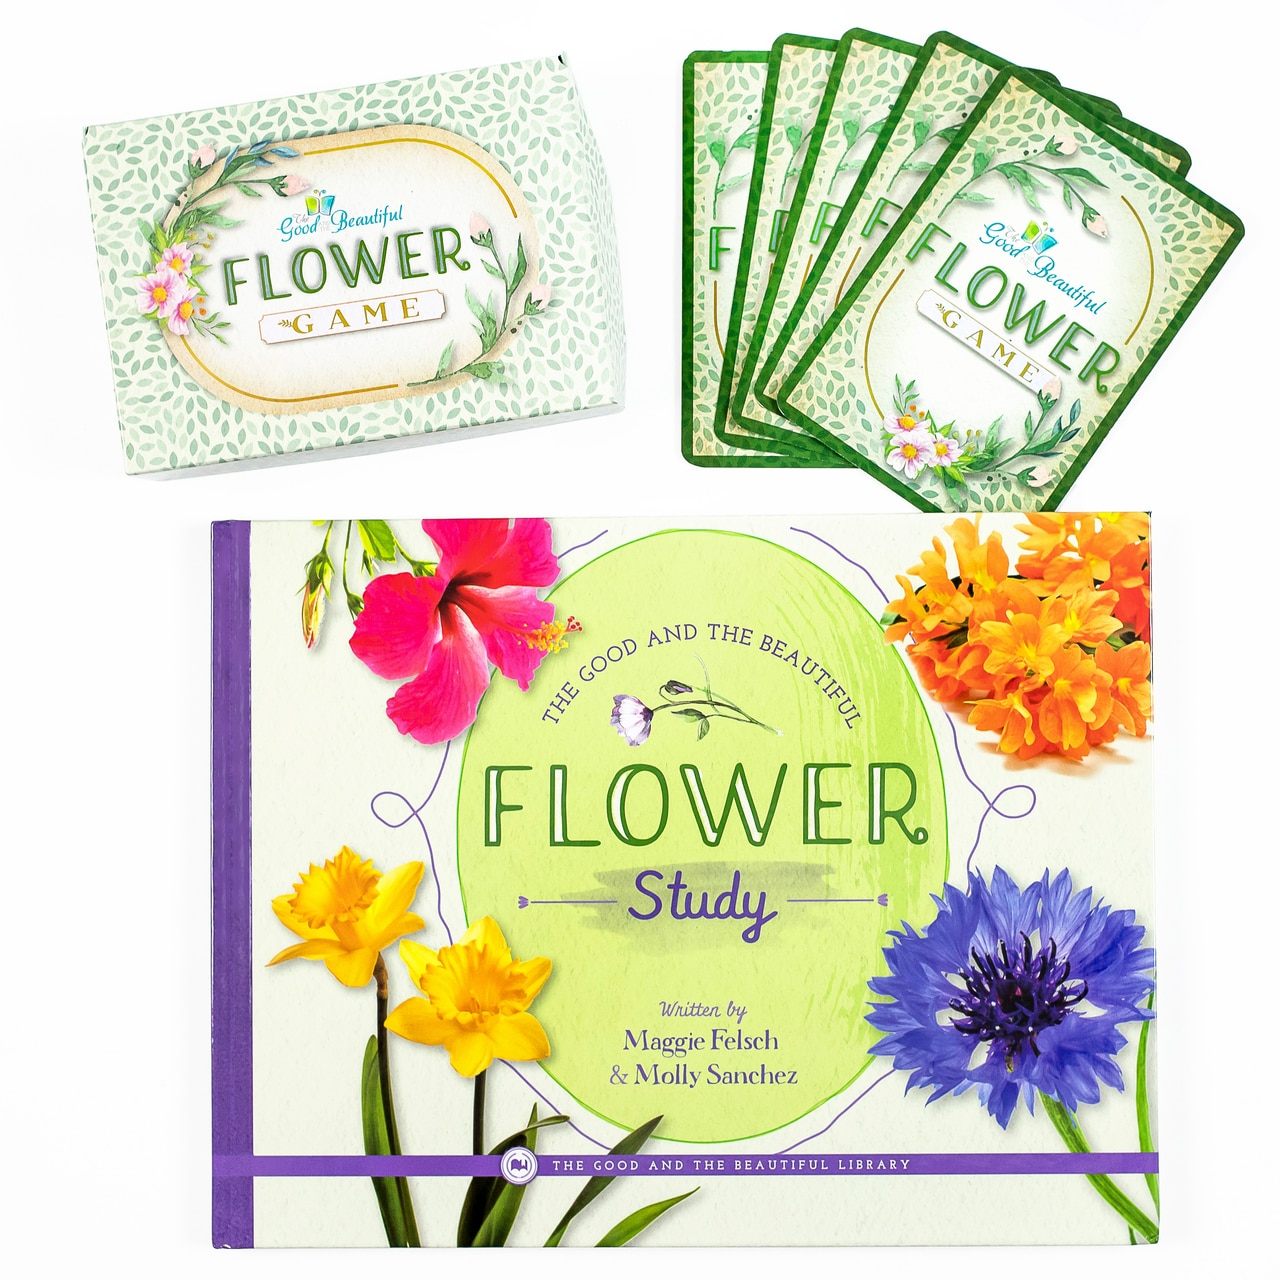 This book and game are optional resources perfect to accompany our Botany science unit. They are included in the optional Botany Read-Aloud Book Pack.